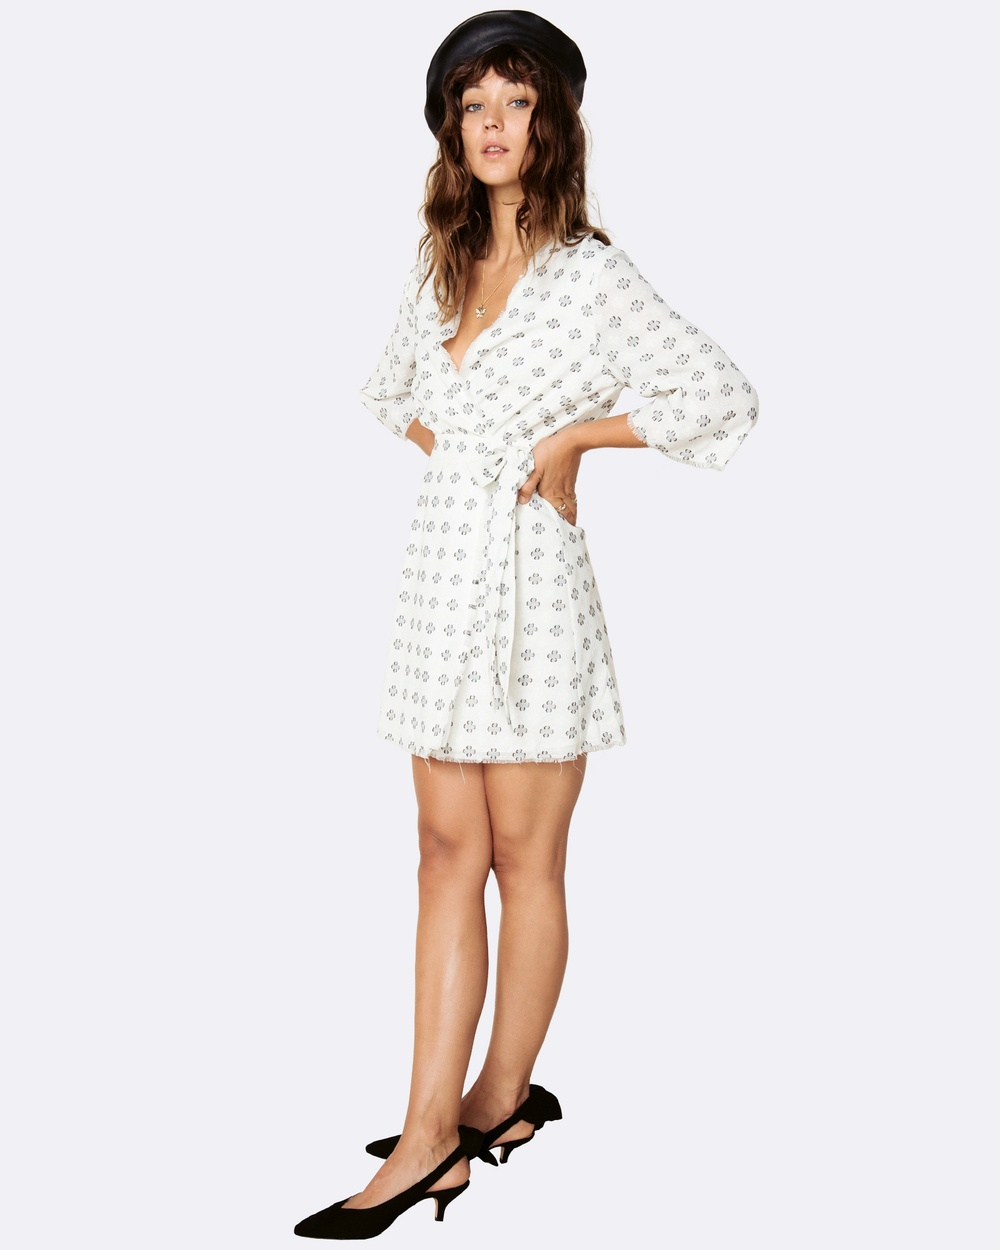 The East Order Ruth Wrap Mini Dress Dresses Print Ruth Wrap Mini Dress